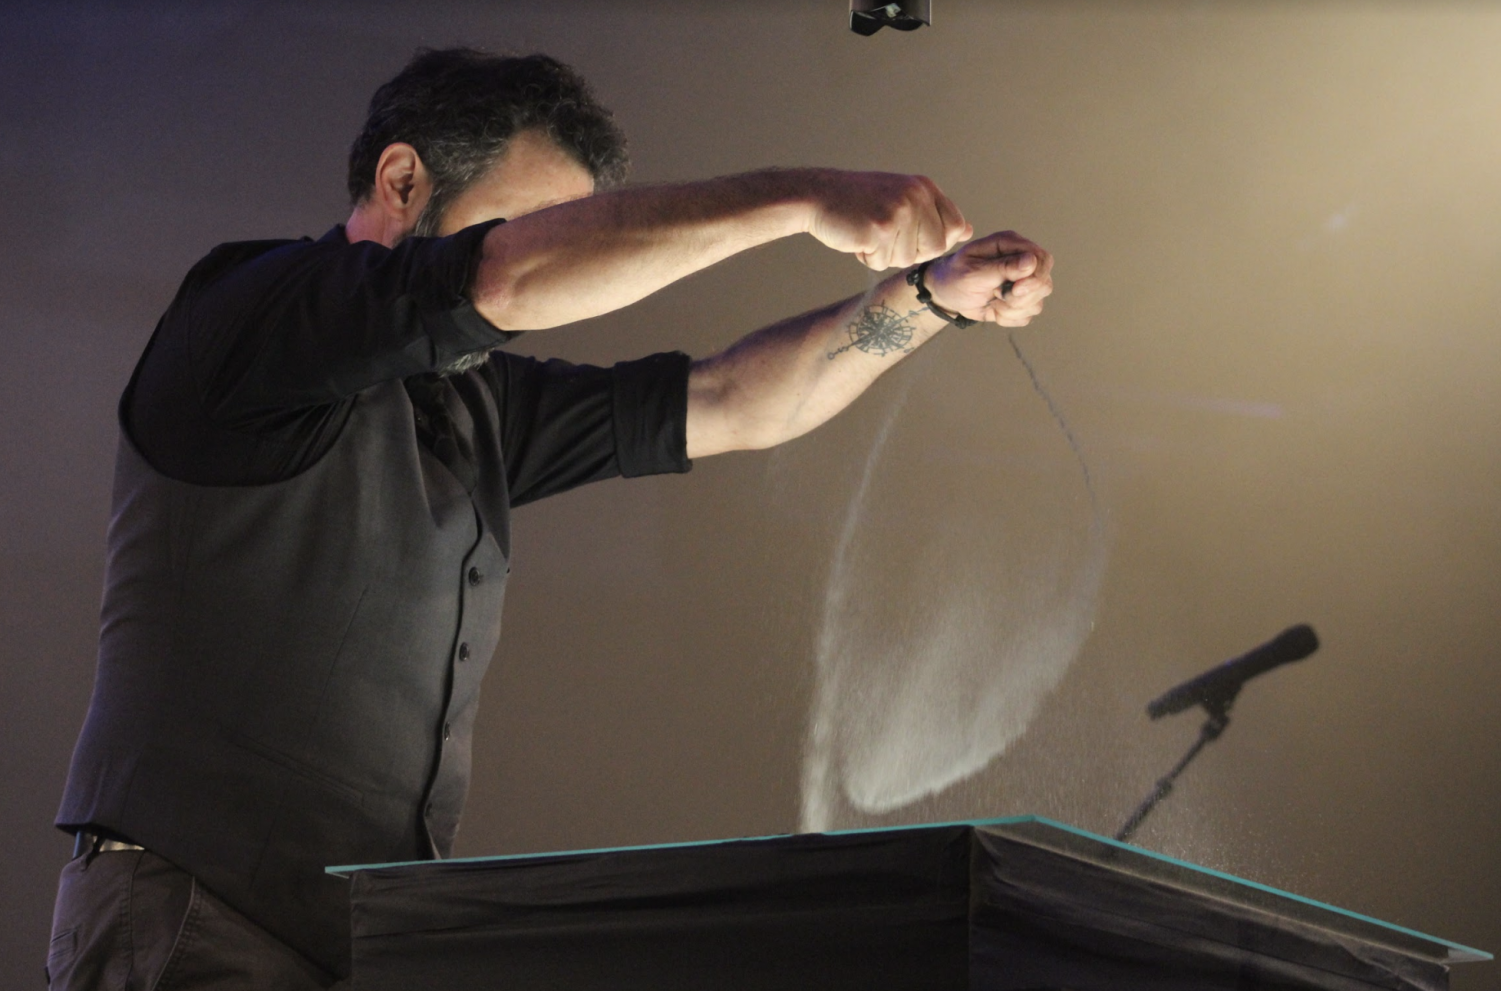 Artist+Jon+Crowe+crafts+a+shifting+picture+with+sand+during+the+opening+of+the+second+keynote+session+of+Missions+Conference+2019+on+March+19.